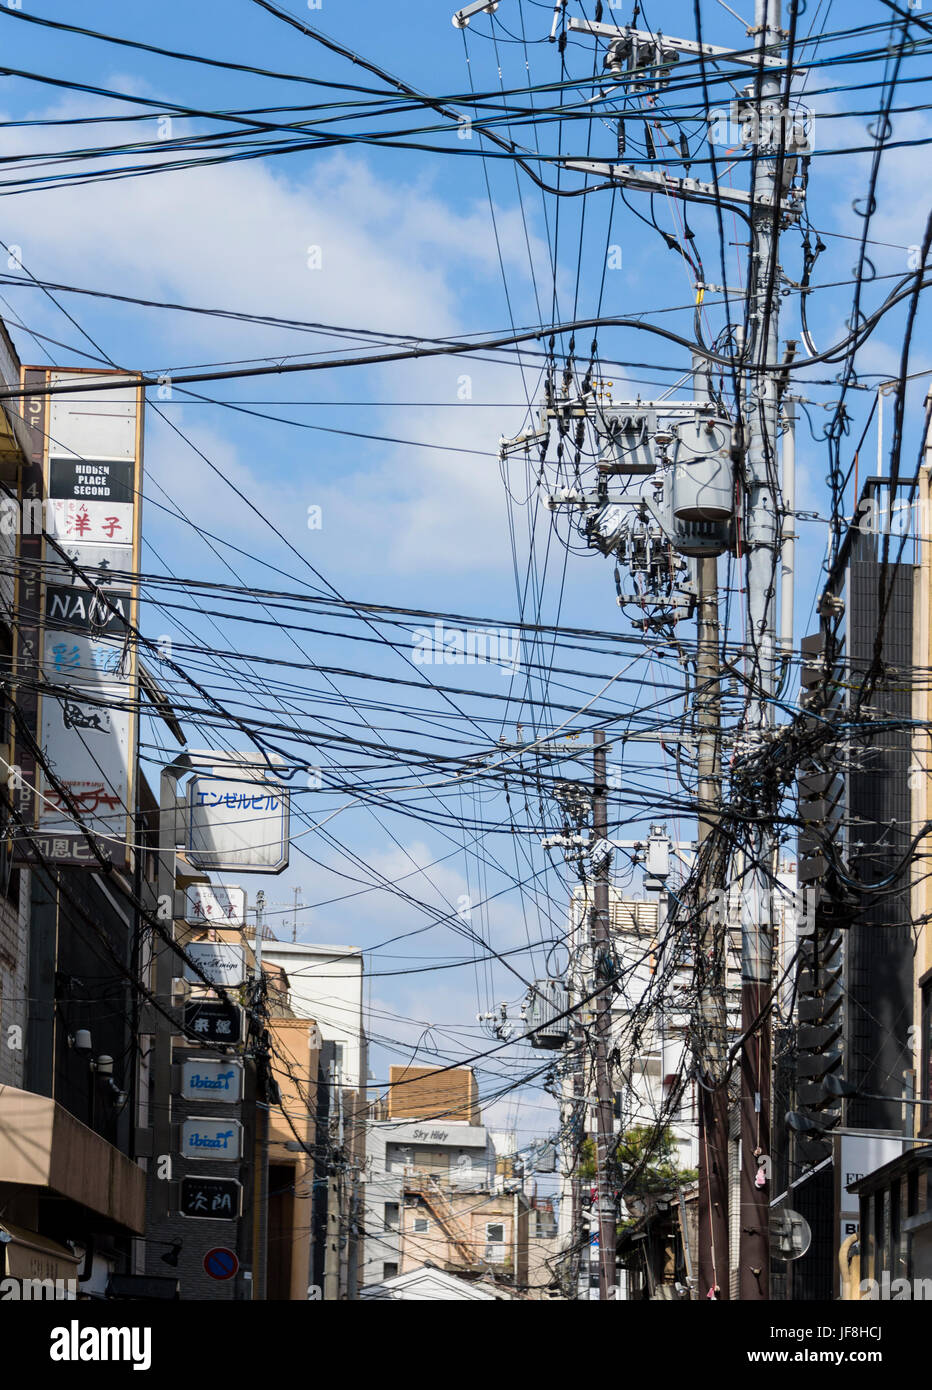 Messy,tangled overhead power cables. - Stock Image